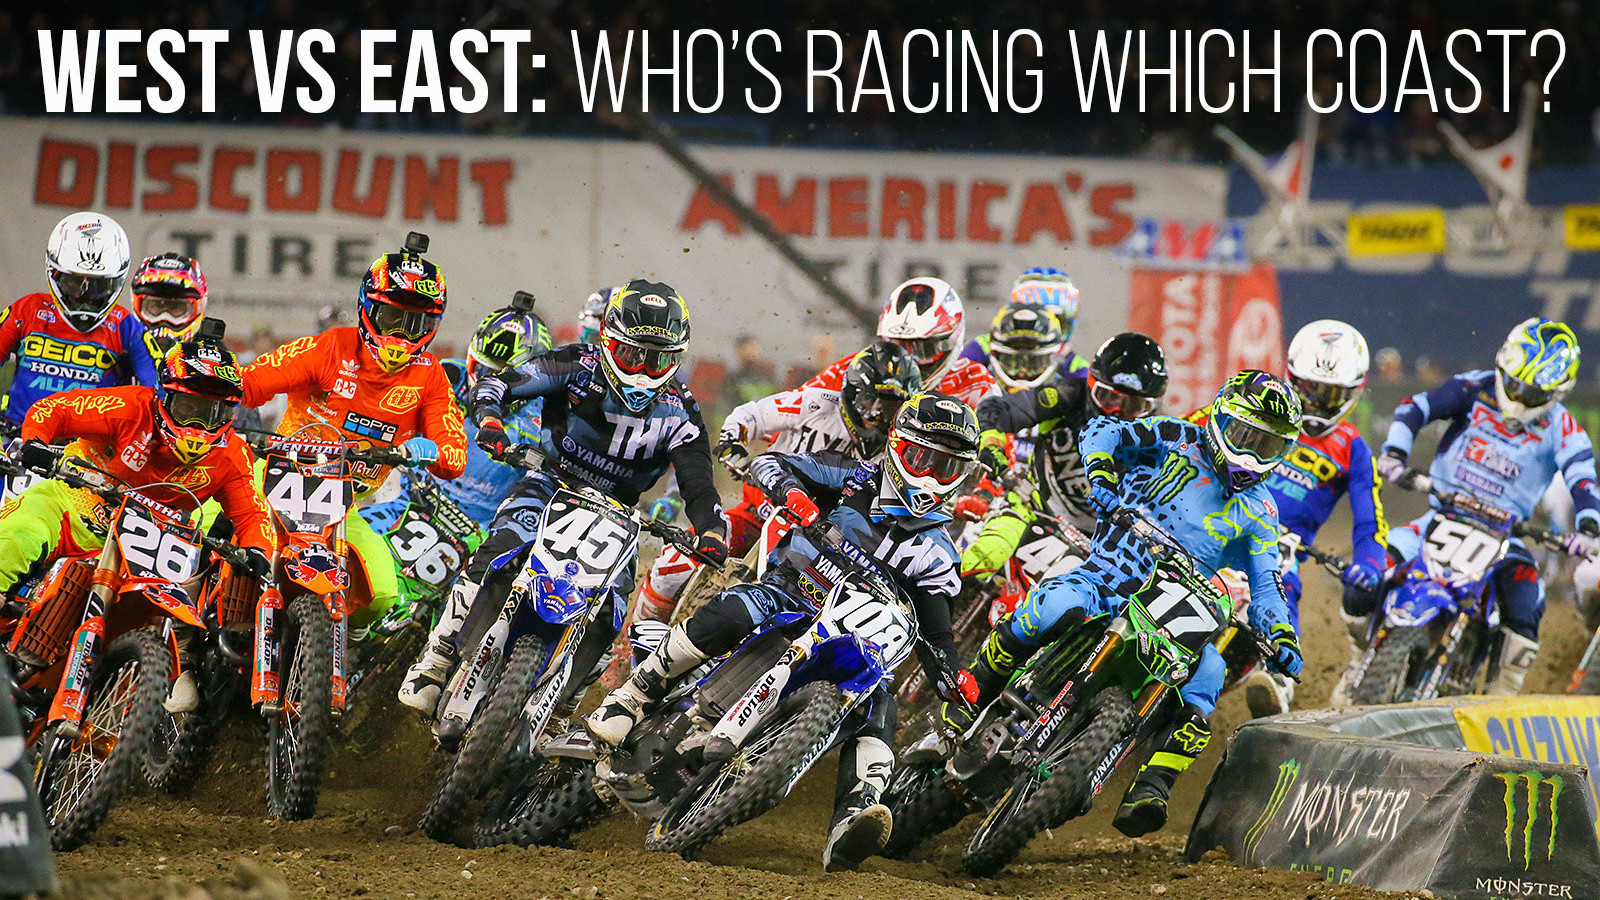 West vs East: Who's Racing which Coast?